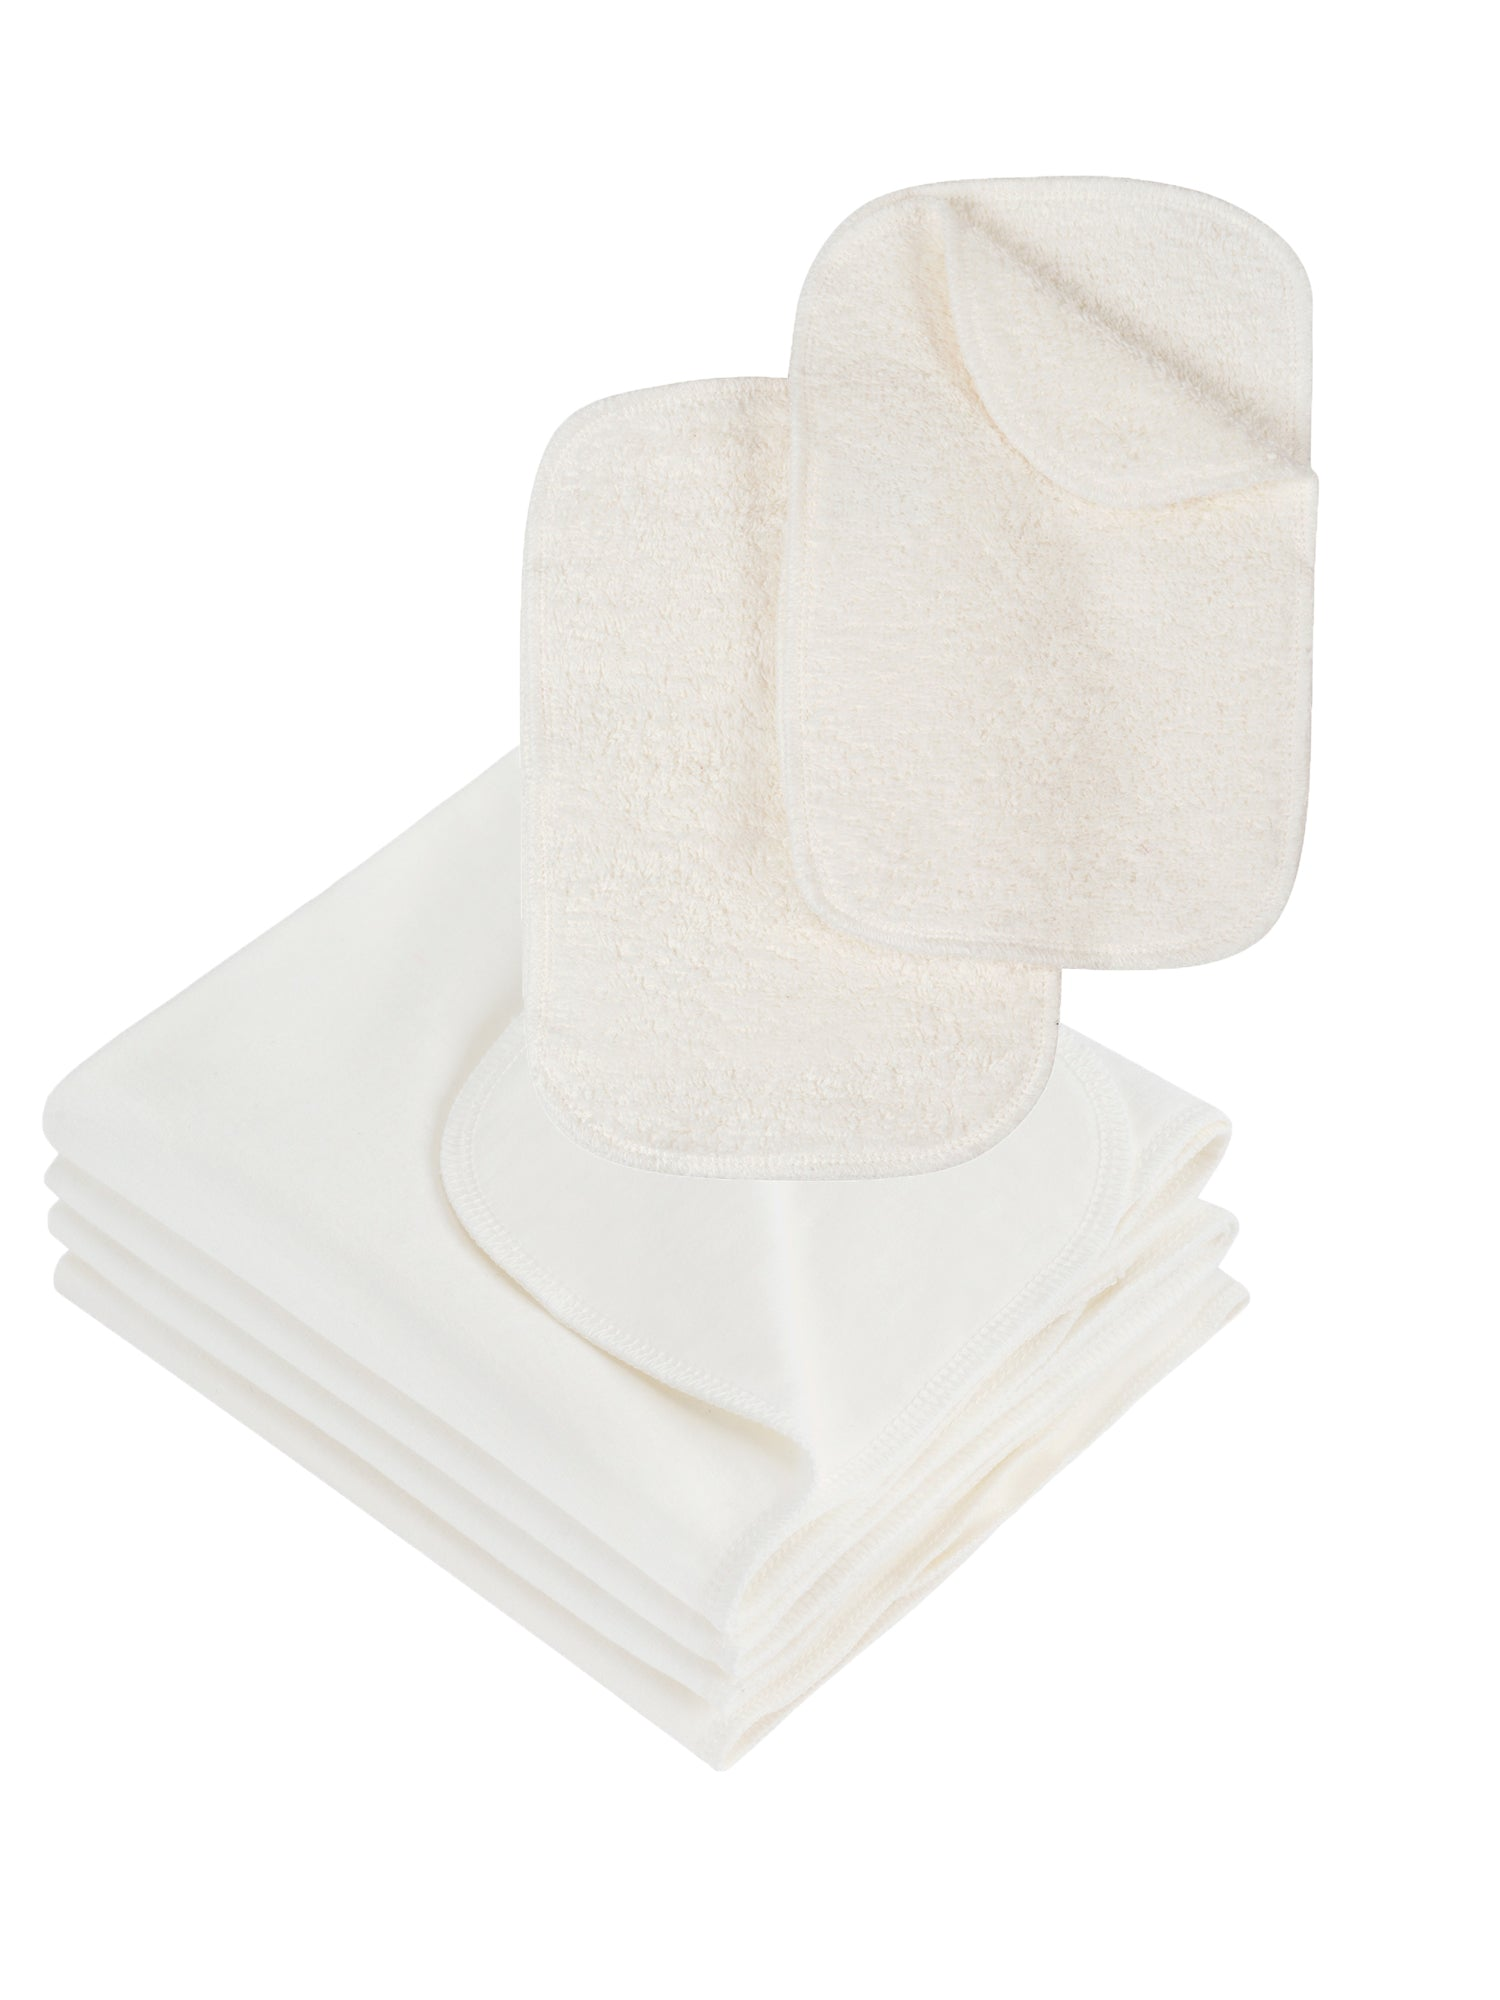 Terry Wipes + Burp Cloths Essentials Value Pack